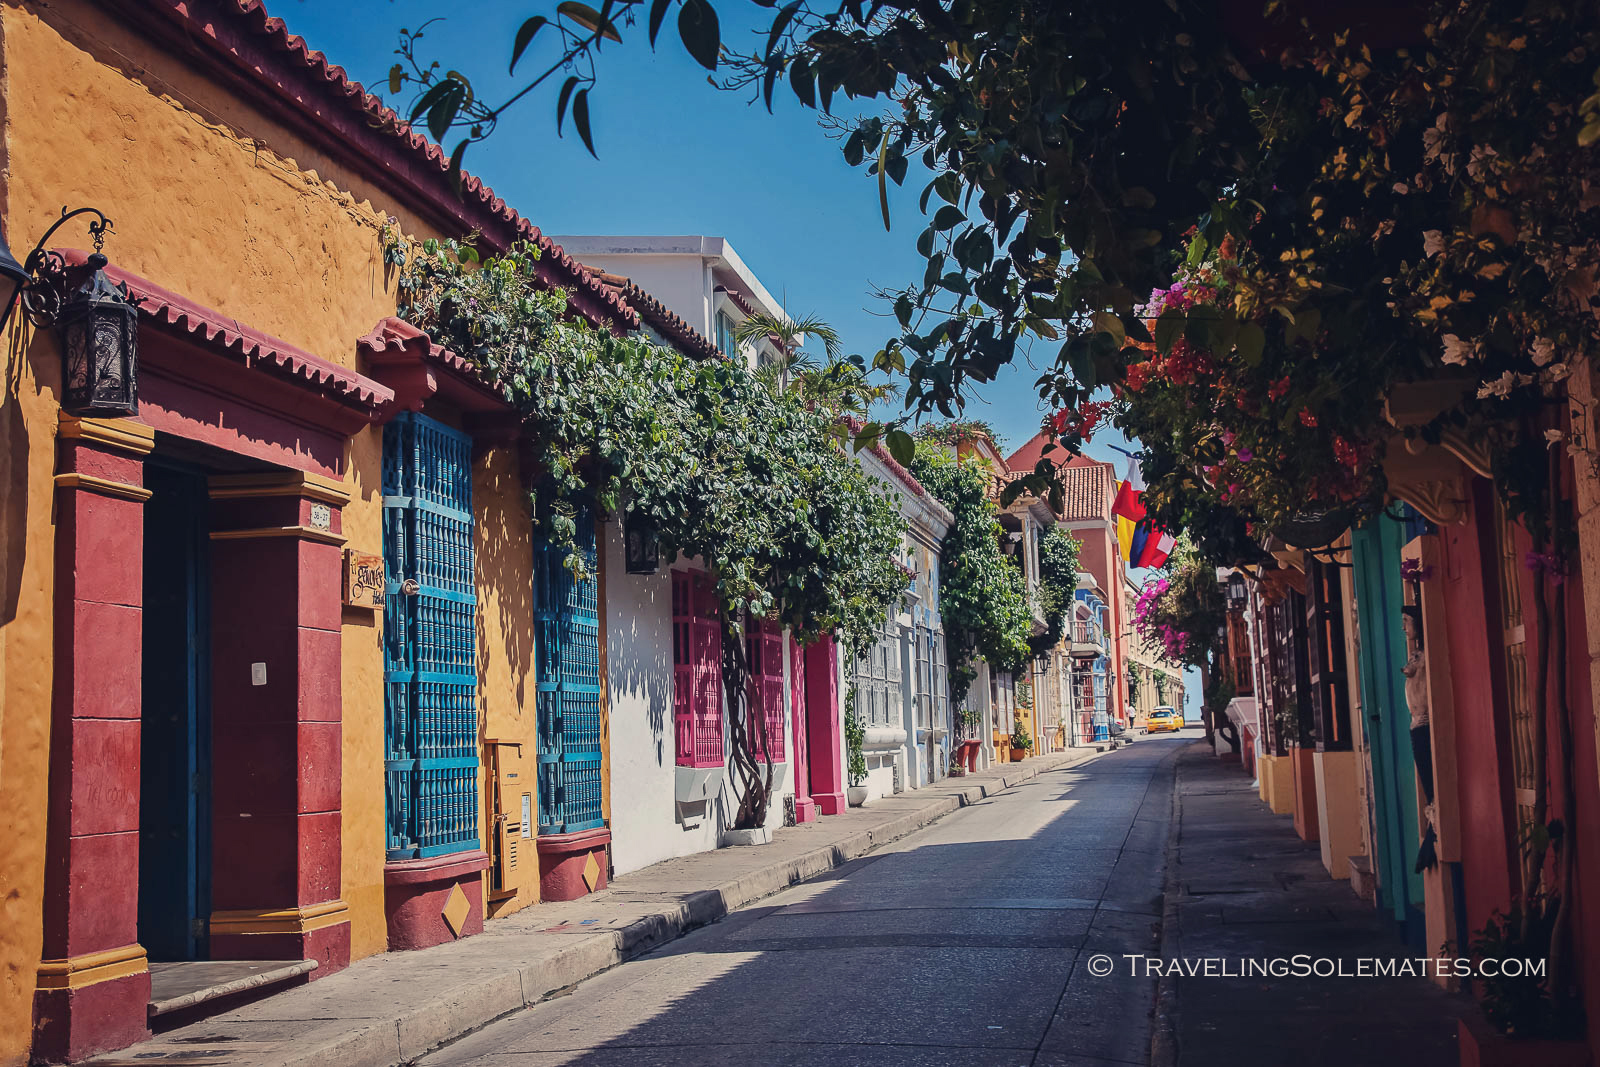 Colorful street in Old Cartagena, Colombia